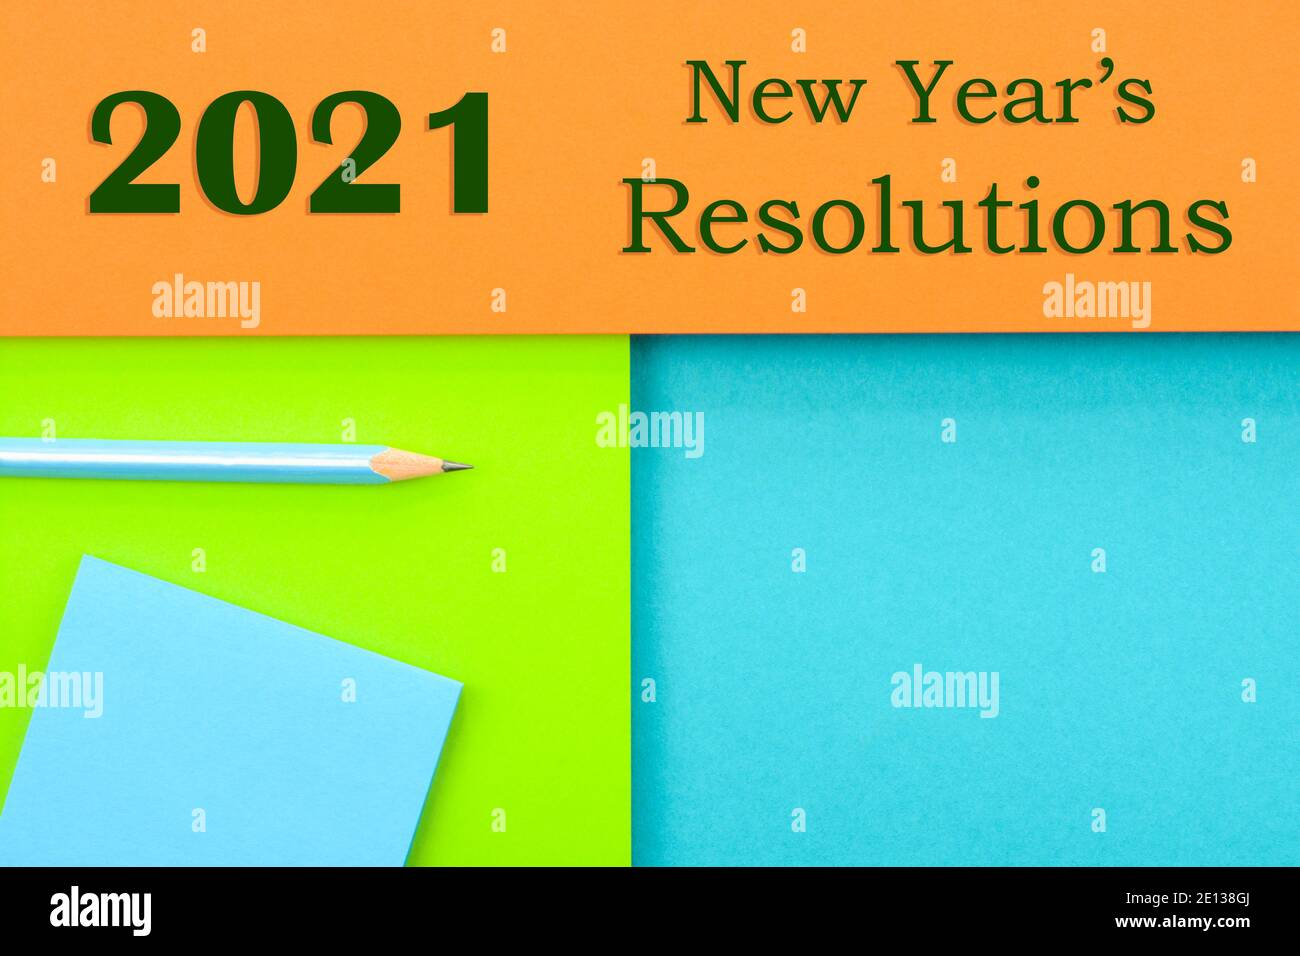 2021 New year's resolutions text on a multicolored background Stock Photo